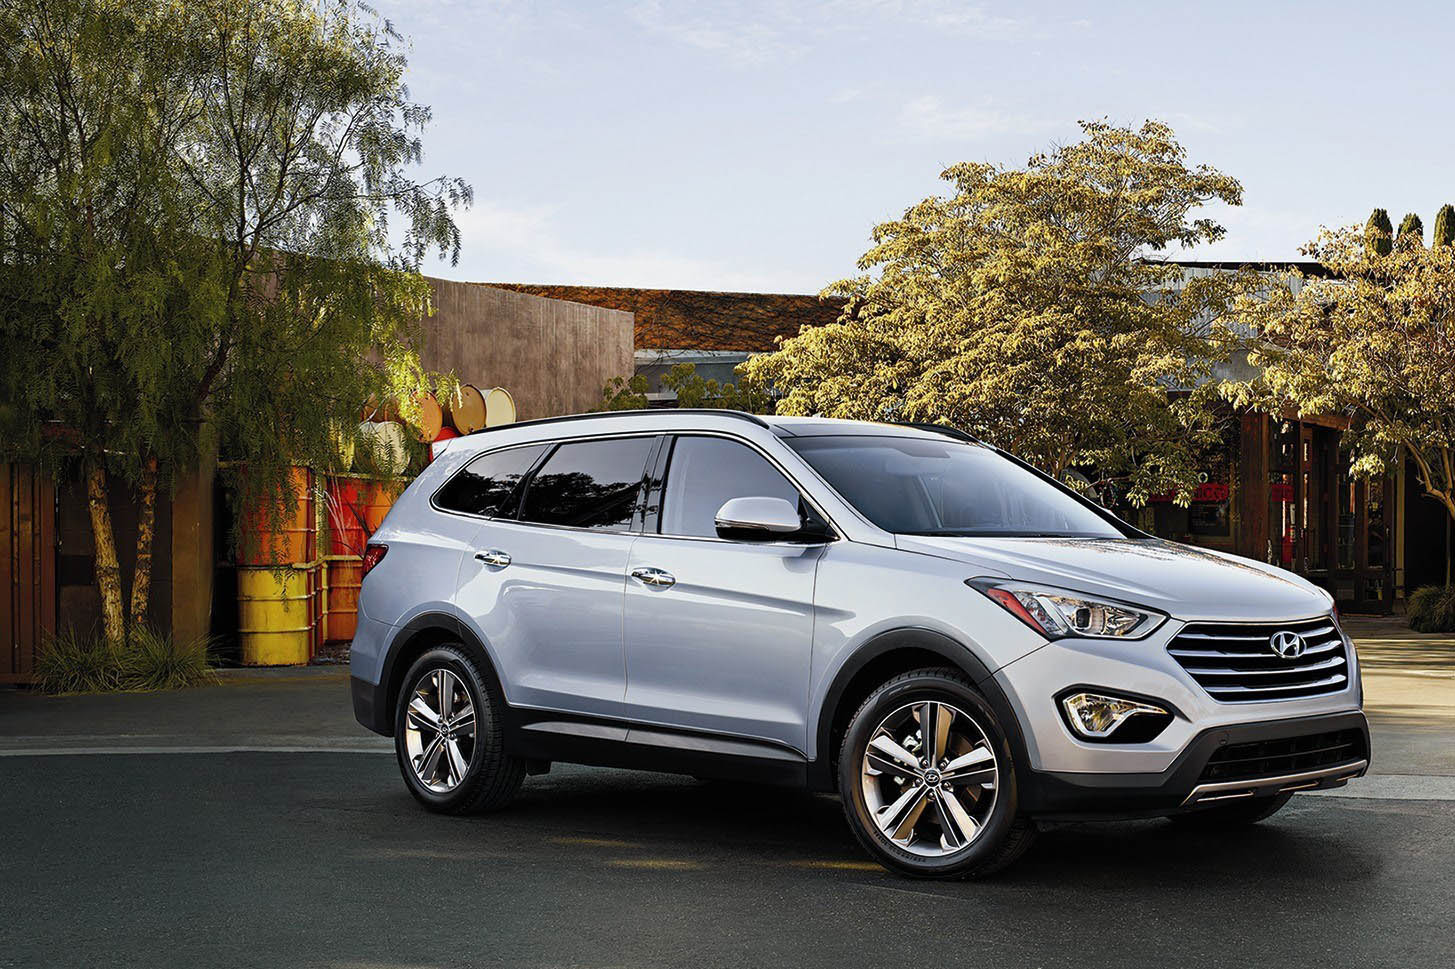 hyundai santa fe named most dependable mid size suv by j d power executive bulletin. Black Bedroom Furniture Sets. Home Design Ideas